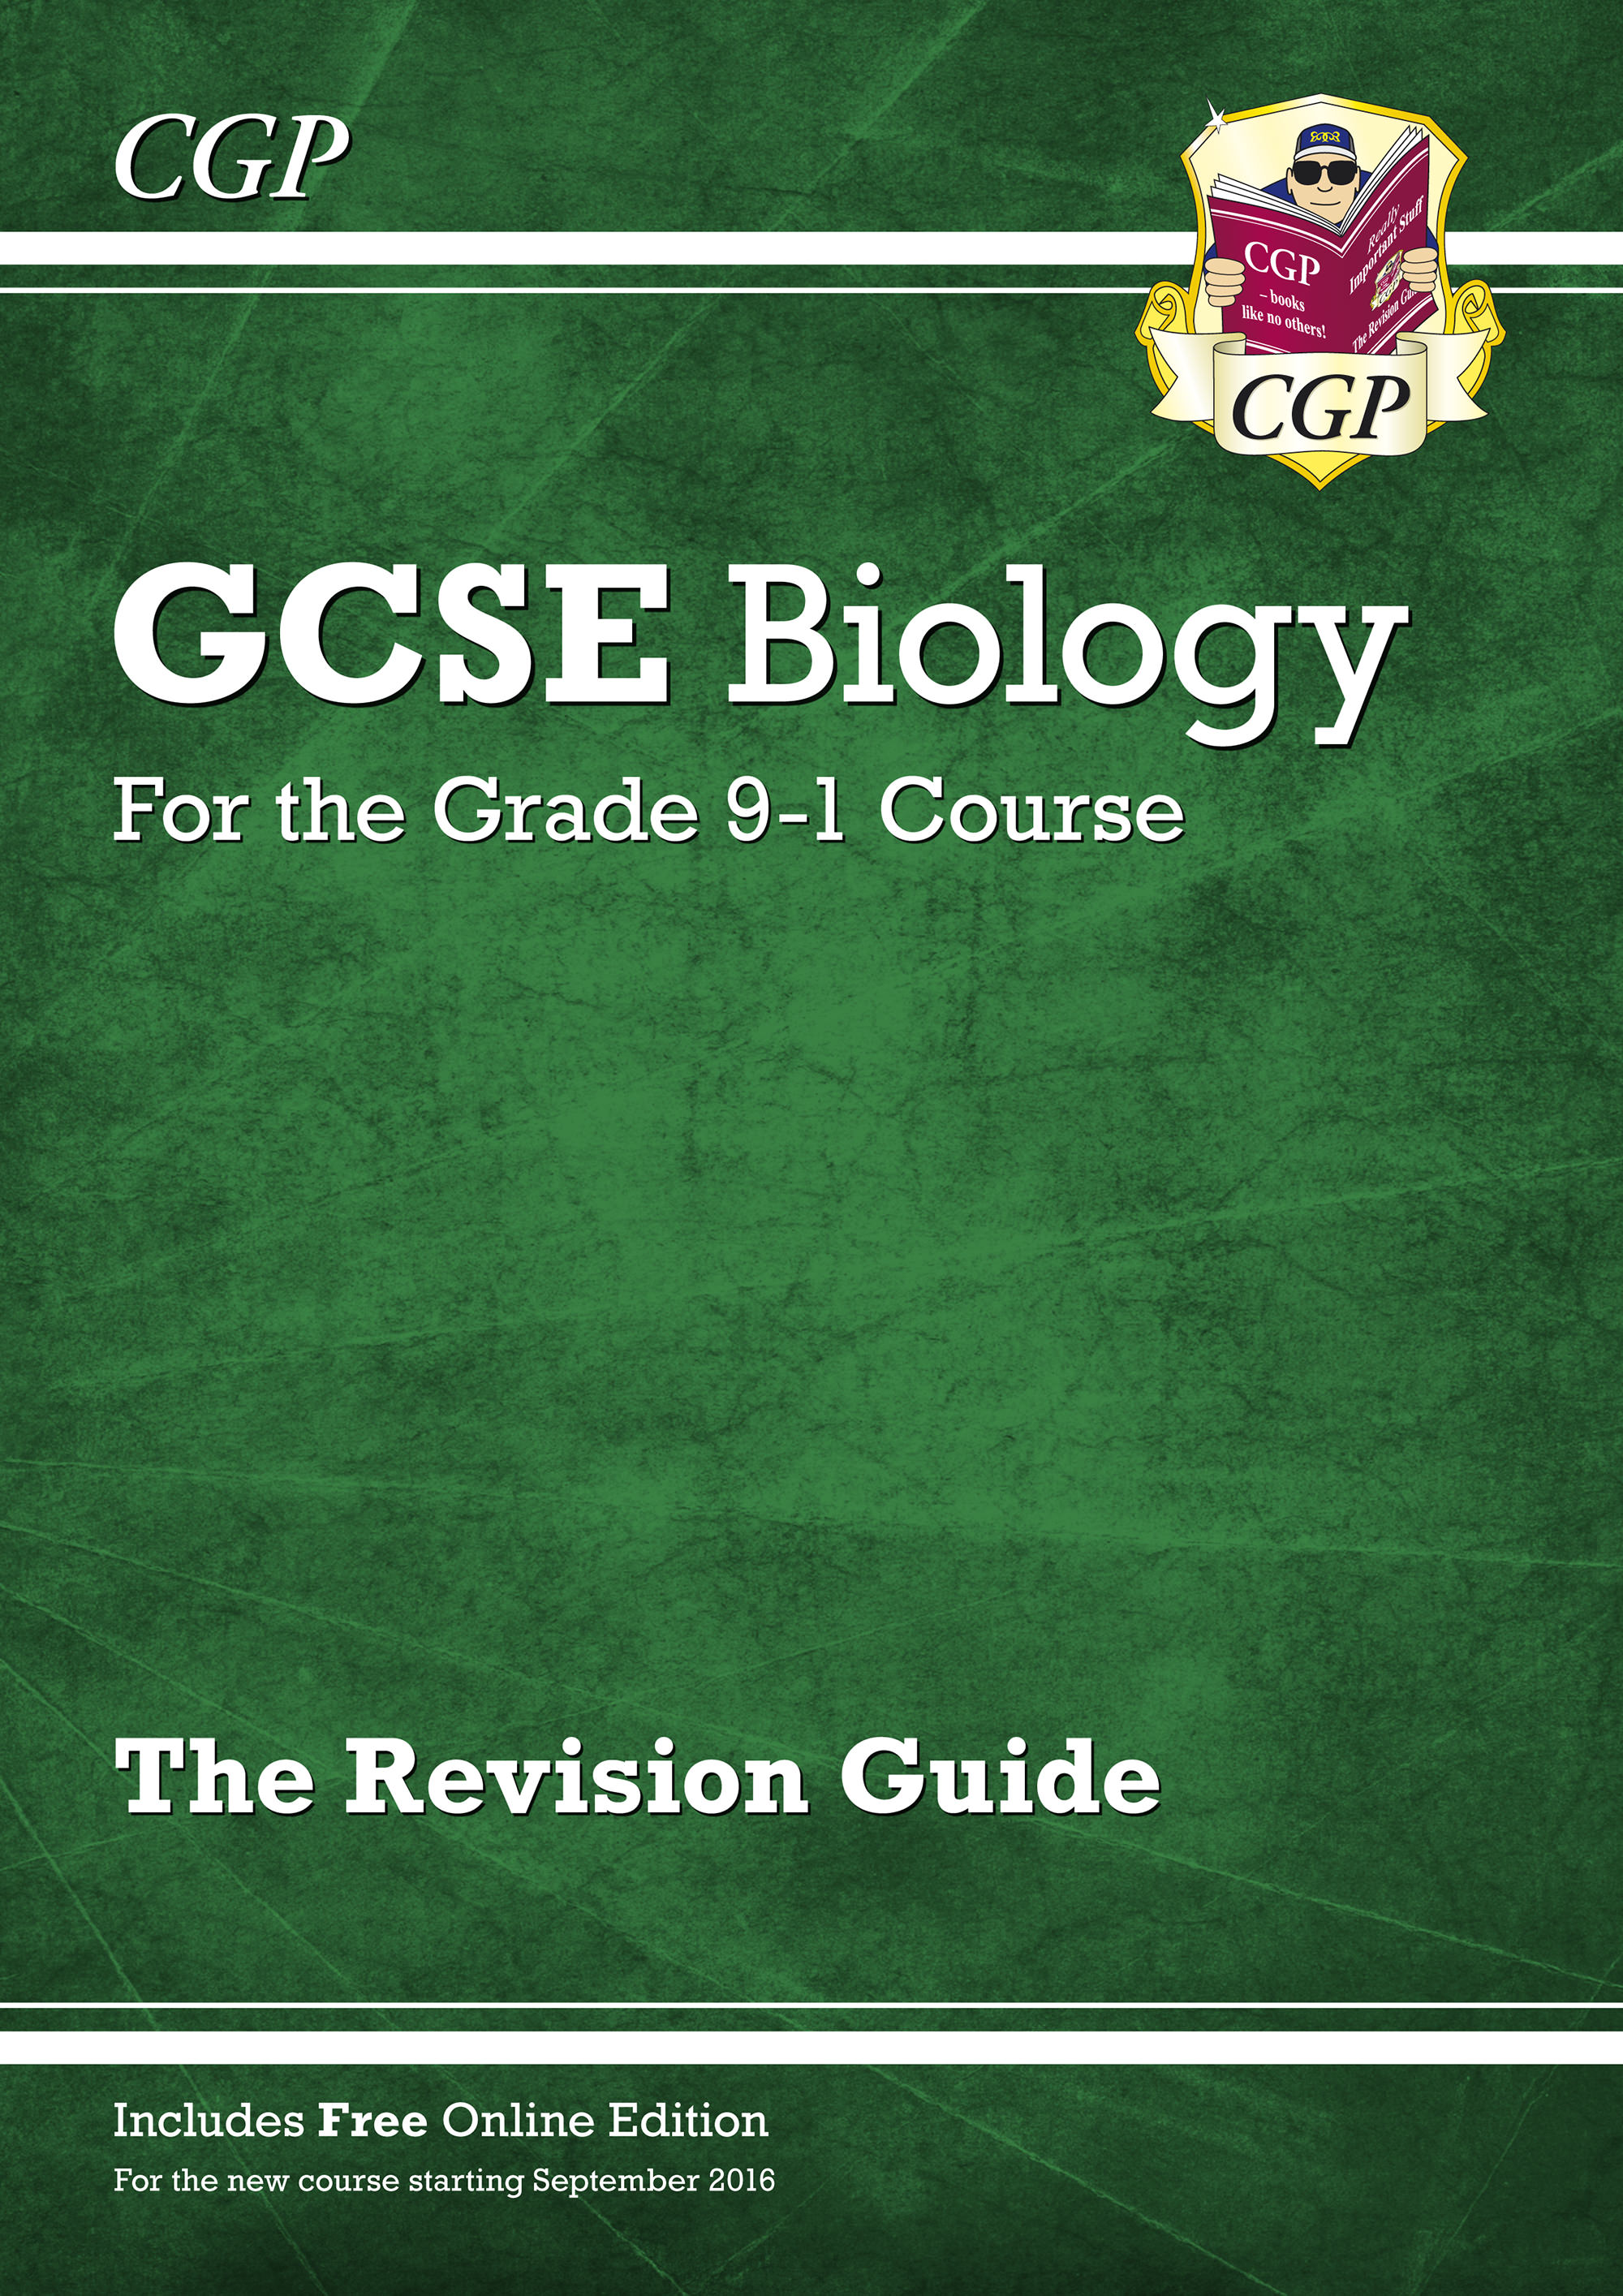 BHR45 - Grade 9-1 GCSE Biology: Revision Guide with Online Edition